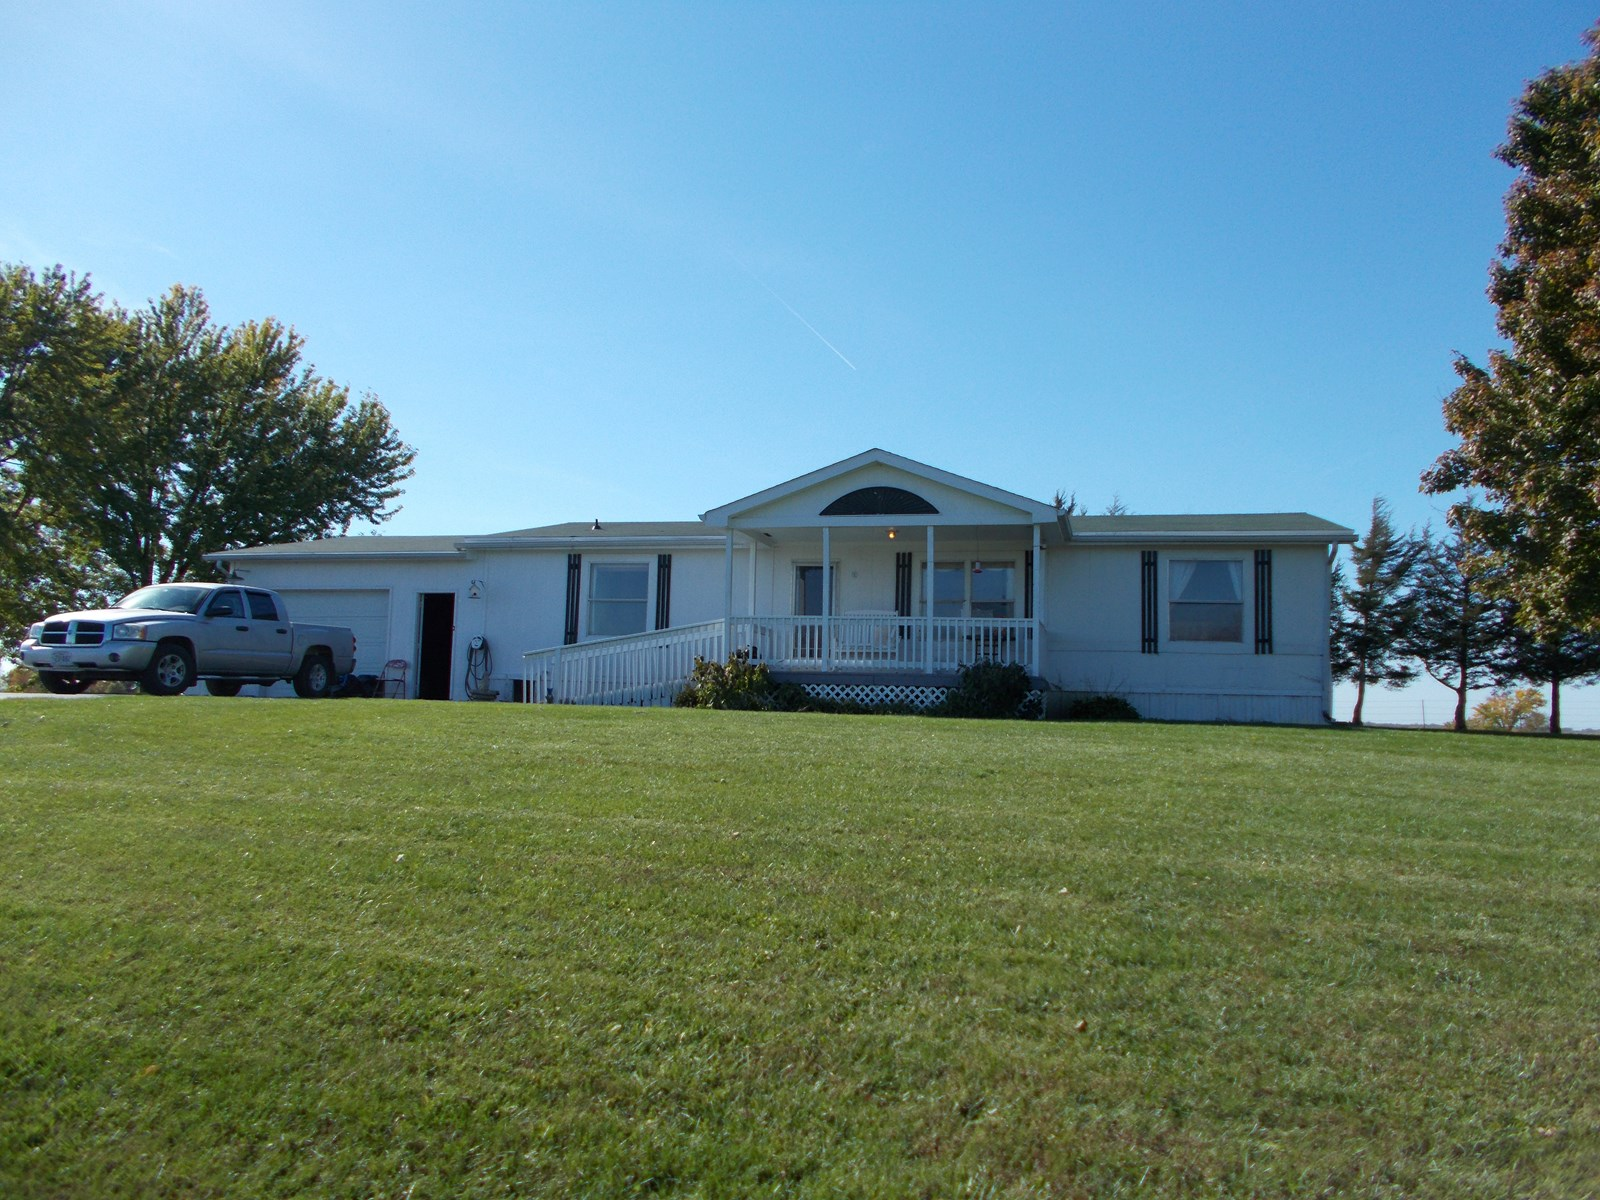 House on 1.3 Acres, Great View & Location, Albany MO